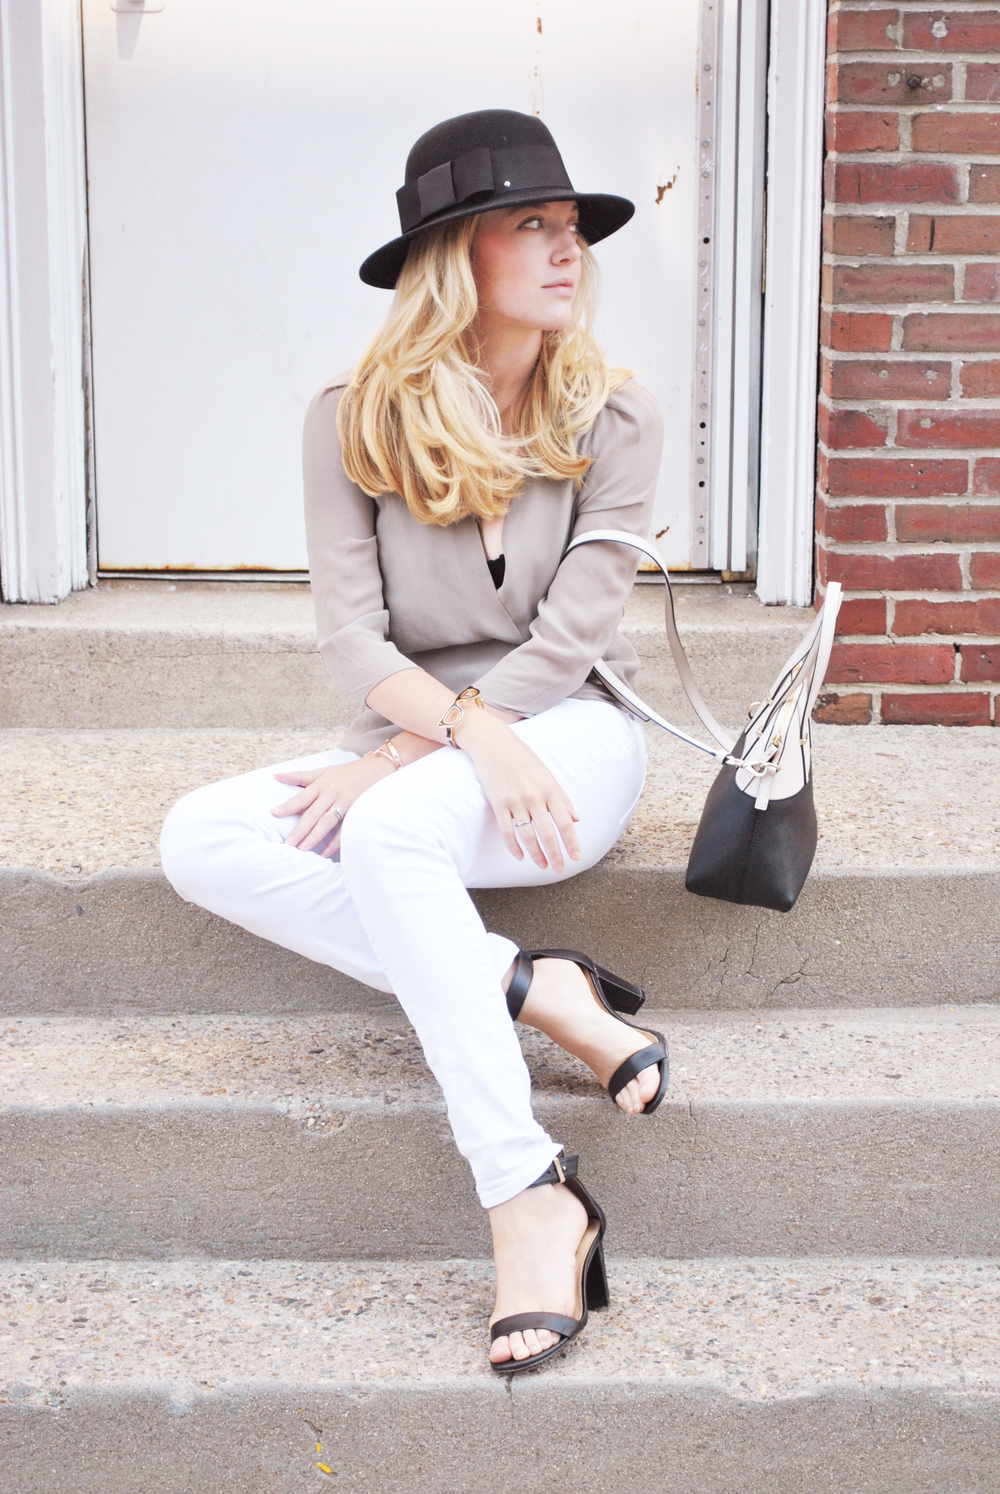 thoughtfulwish | fashion blogger // boston blogger // boston fashion // aritzia // prudential center // boston // meredith wish // kate spade // white denim // early fall outfit